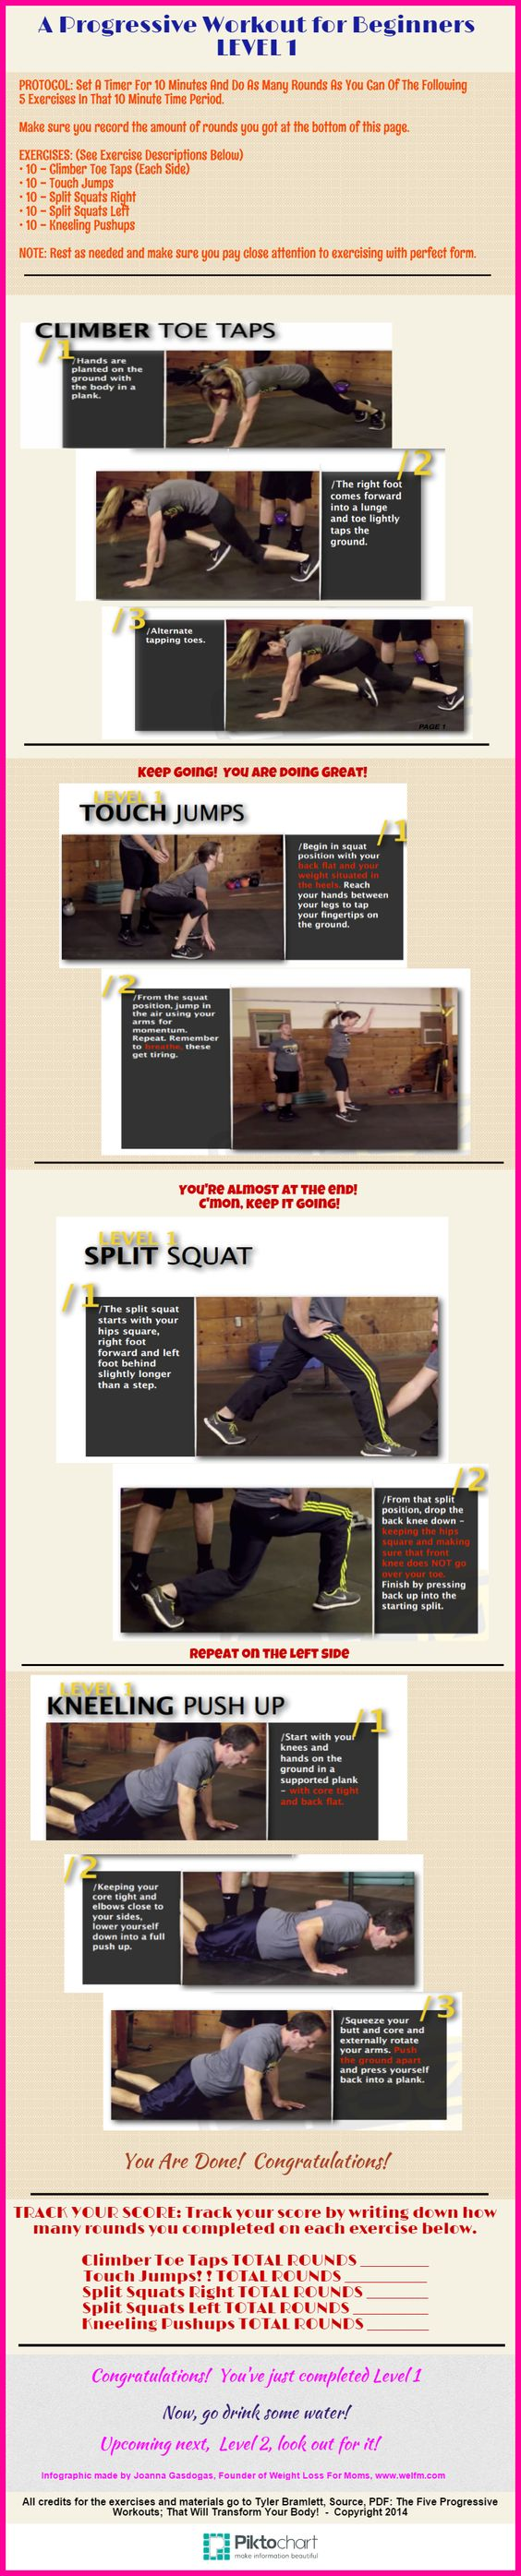 A workout for beginners using your own body weight.  Designed for weight loss and toning.  Infographic by: www.welfm.com